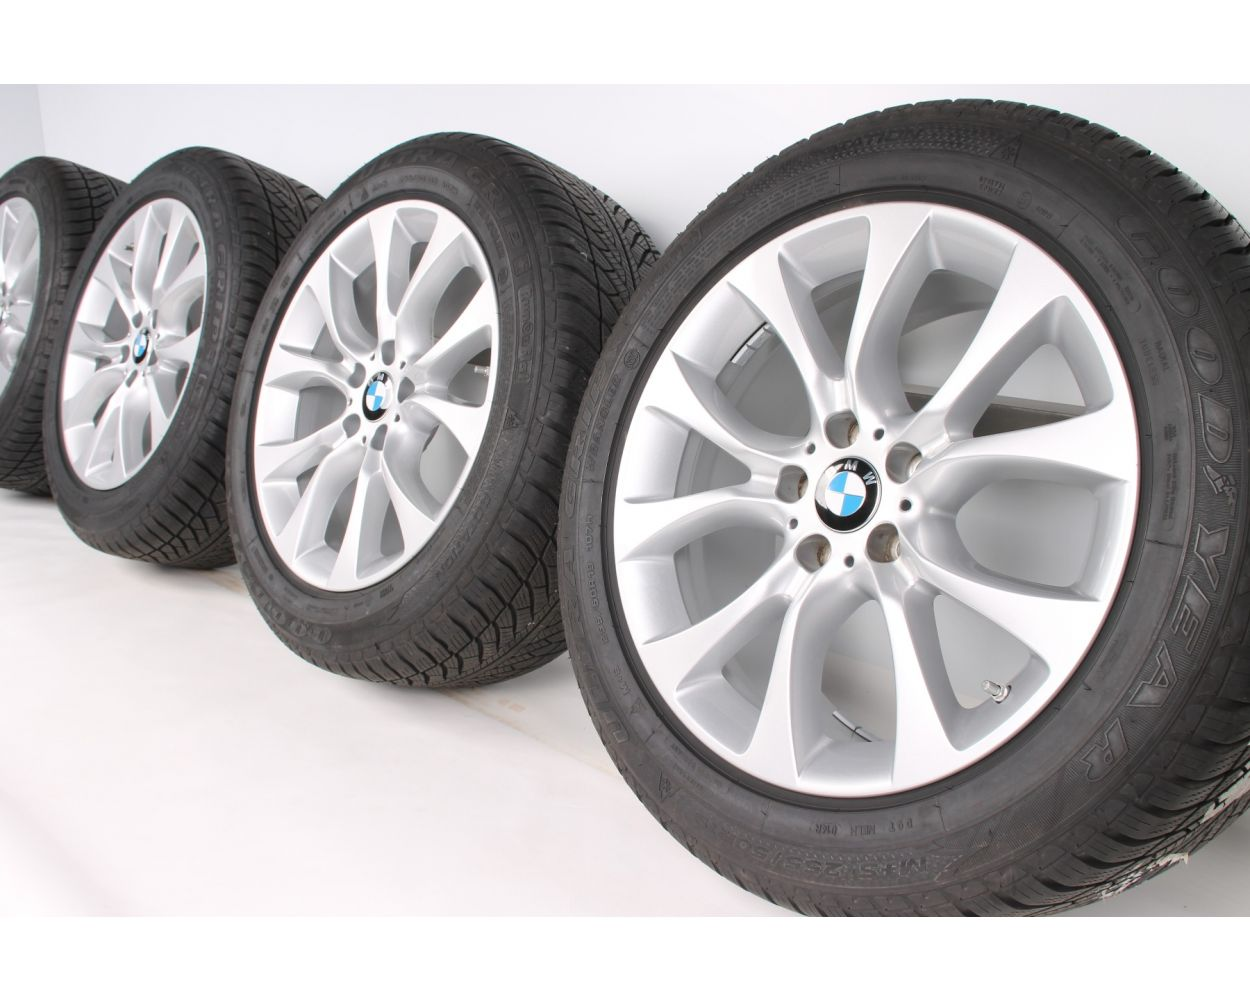 Bmw Winter Wheels X5 F15 E70 19 Zoll 450 V Spoke Rdc Silber